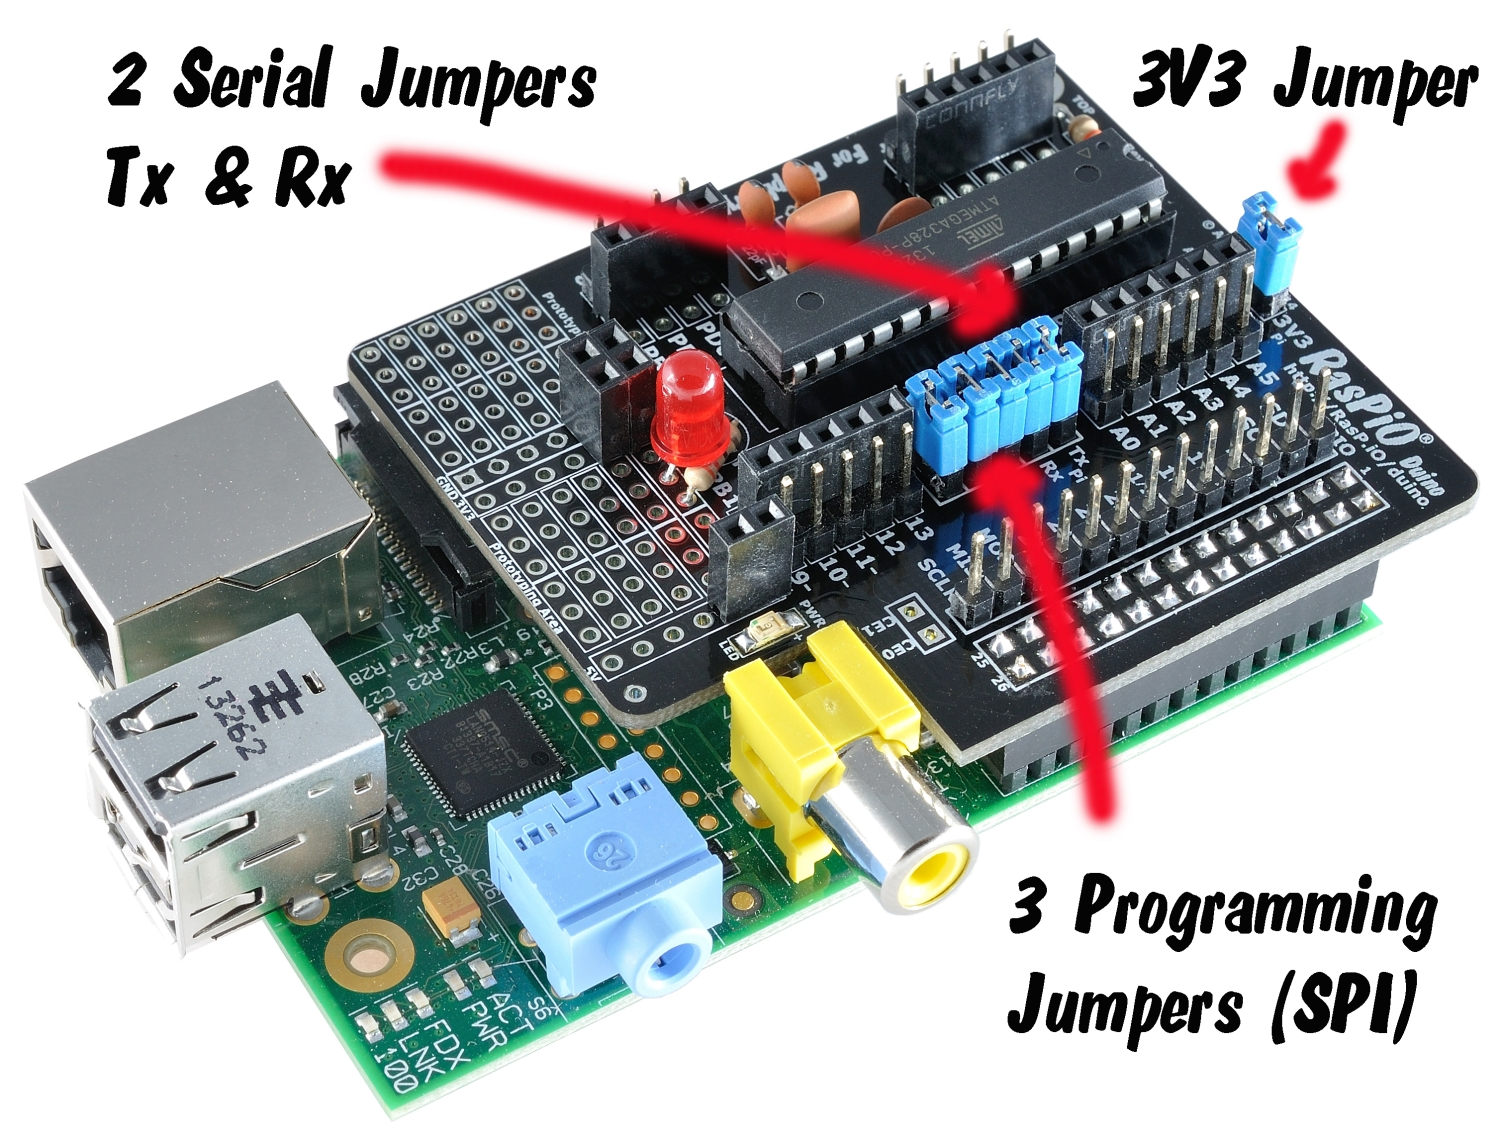 Duino Raspberry Pi Shield For Dummies Experimental Board Analog Digital Raspio Showing Programming And Serial Jumpers